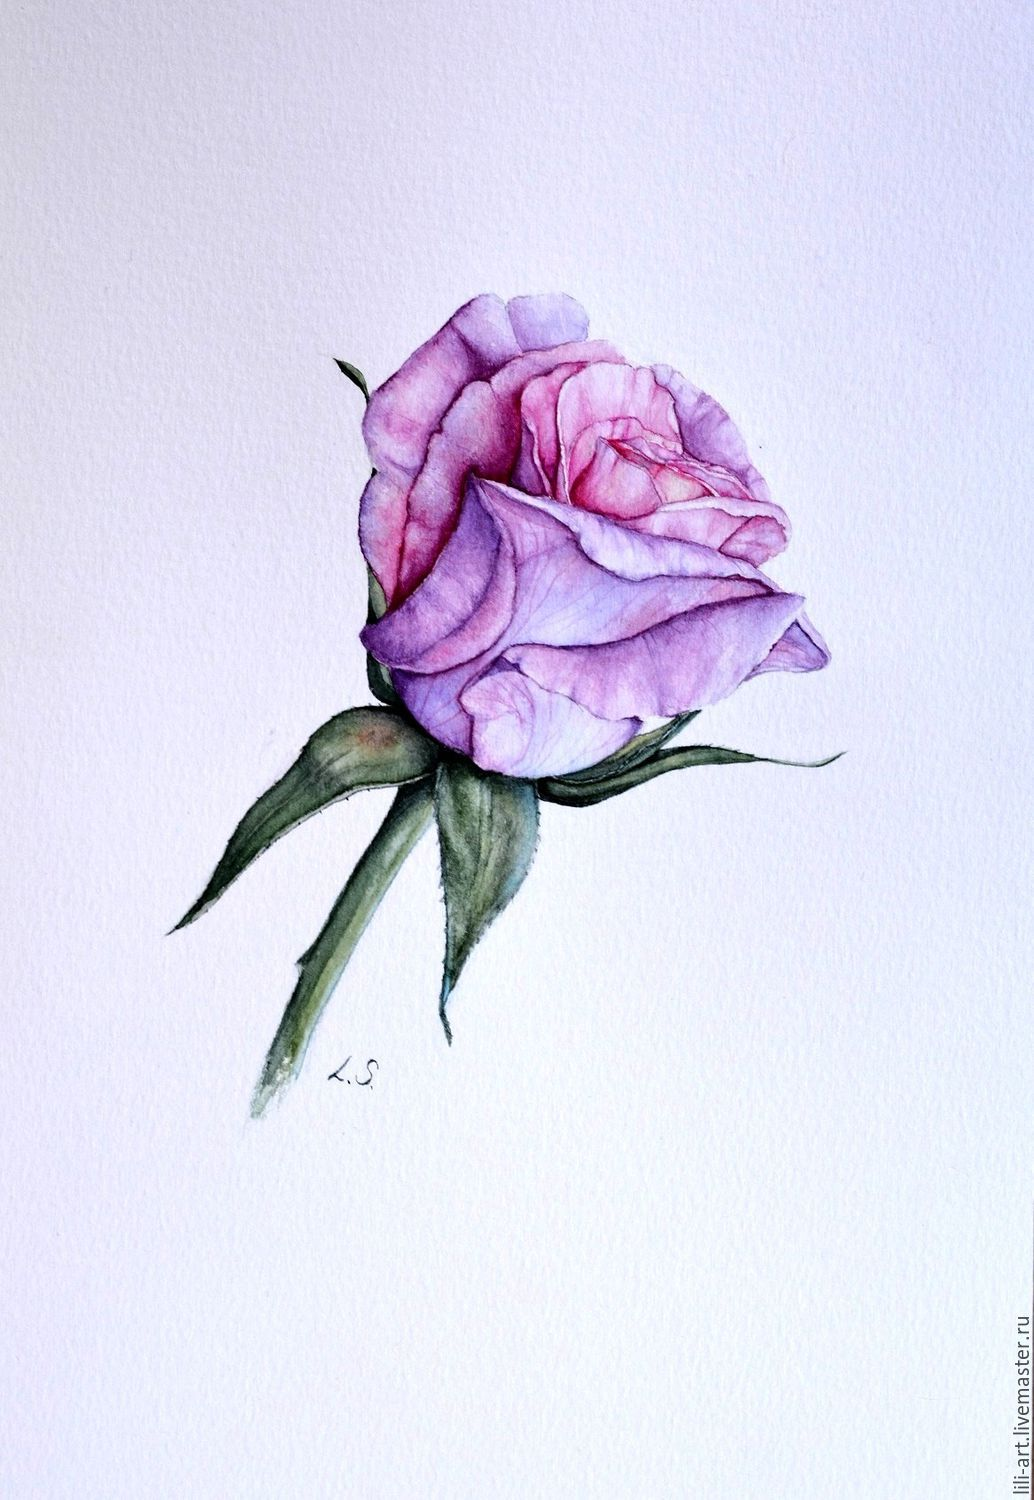 Original Watercolor Painting Rose Shop Online On Livemaster With